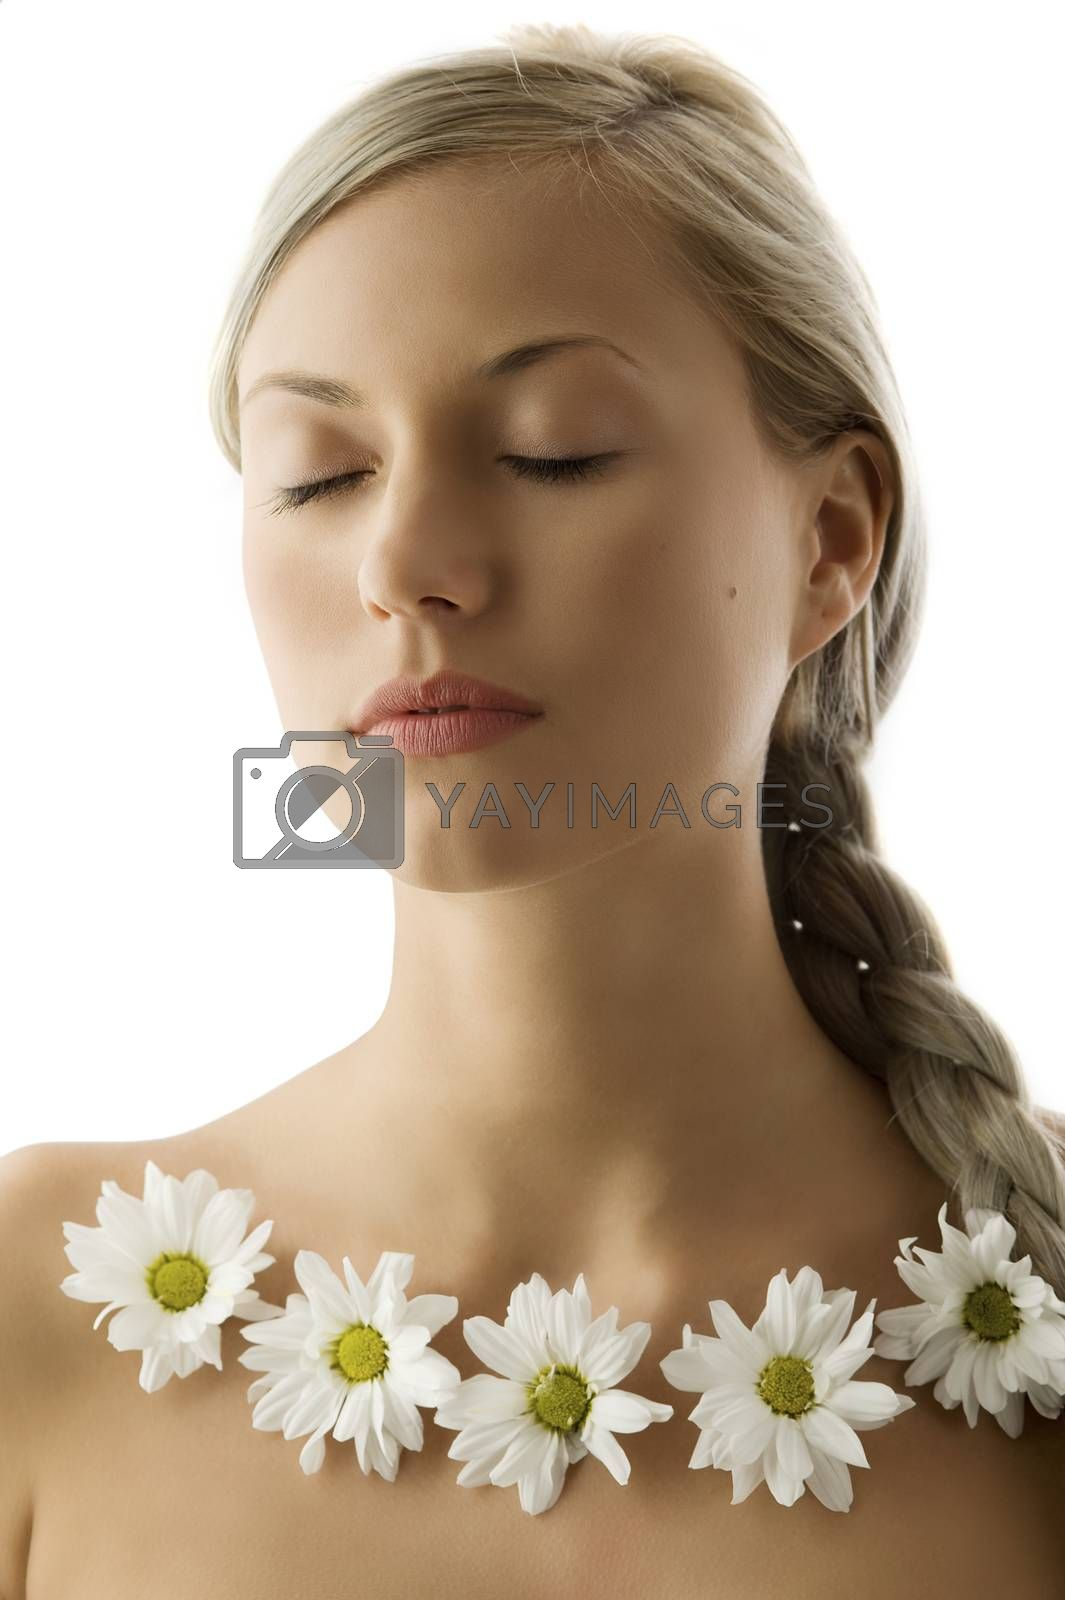 Royalty free image of blond with closed eyes by fotoCD